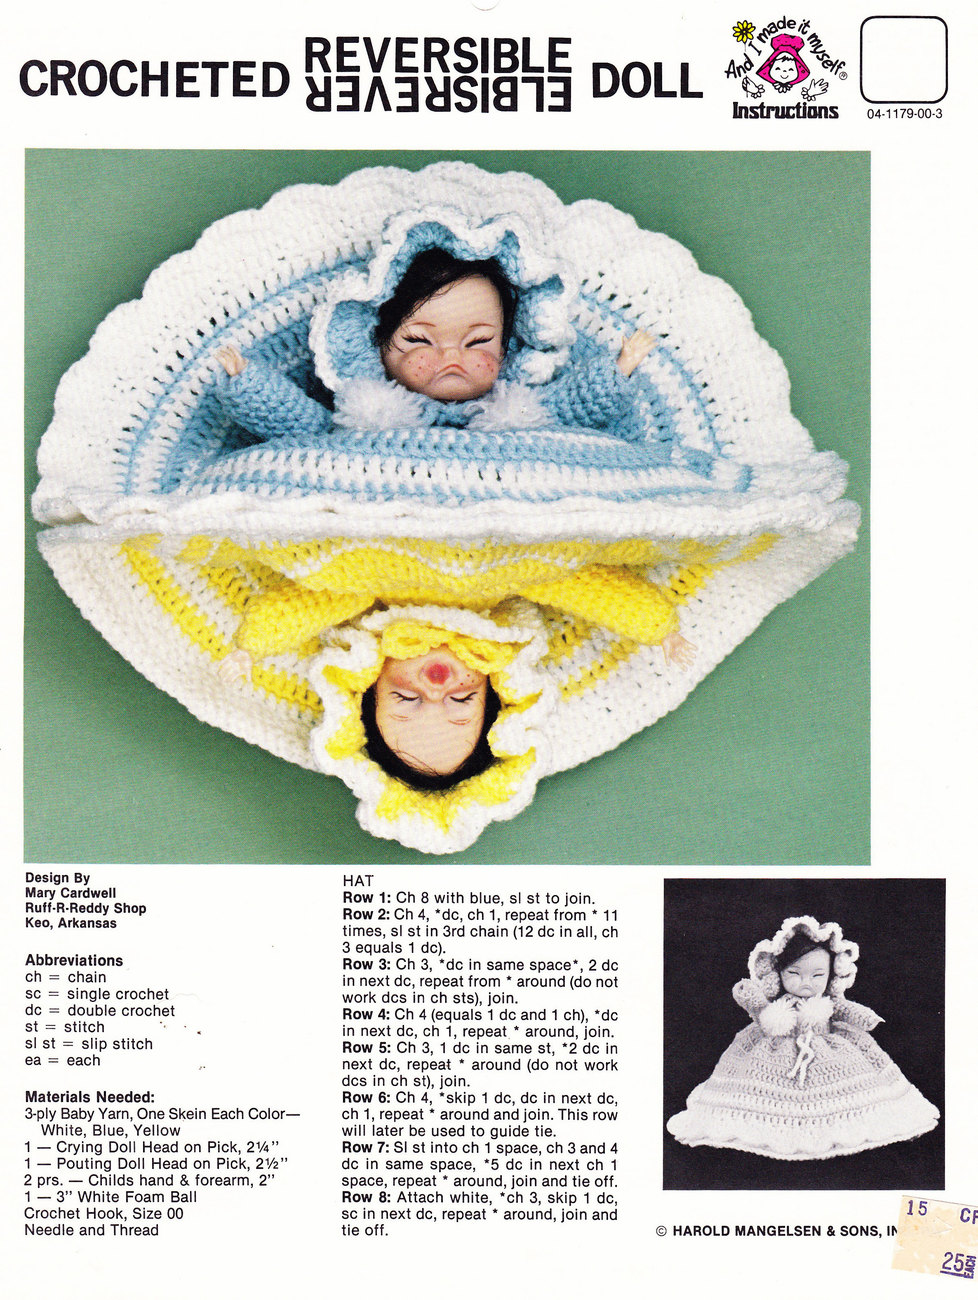 Primary image for CROCHETED REVERSIBLE DOLL INSTRUCTION SHEET